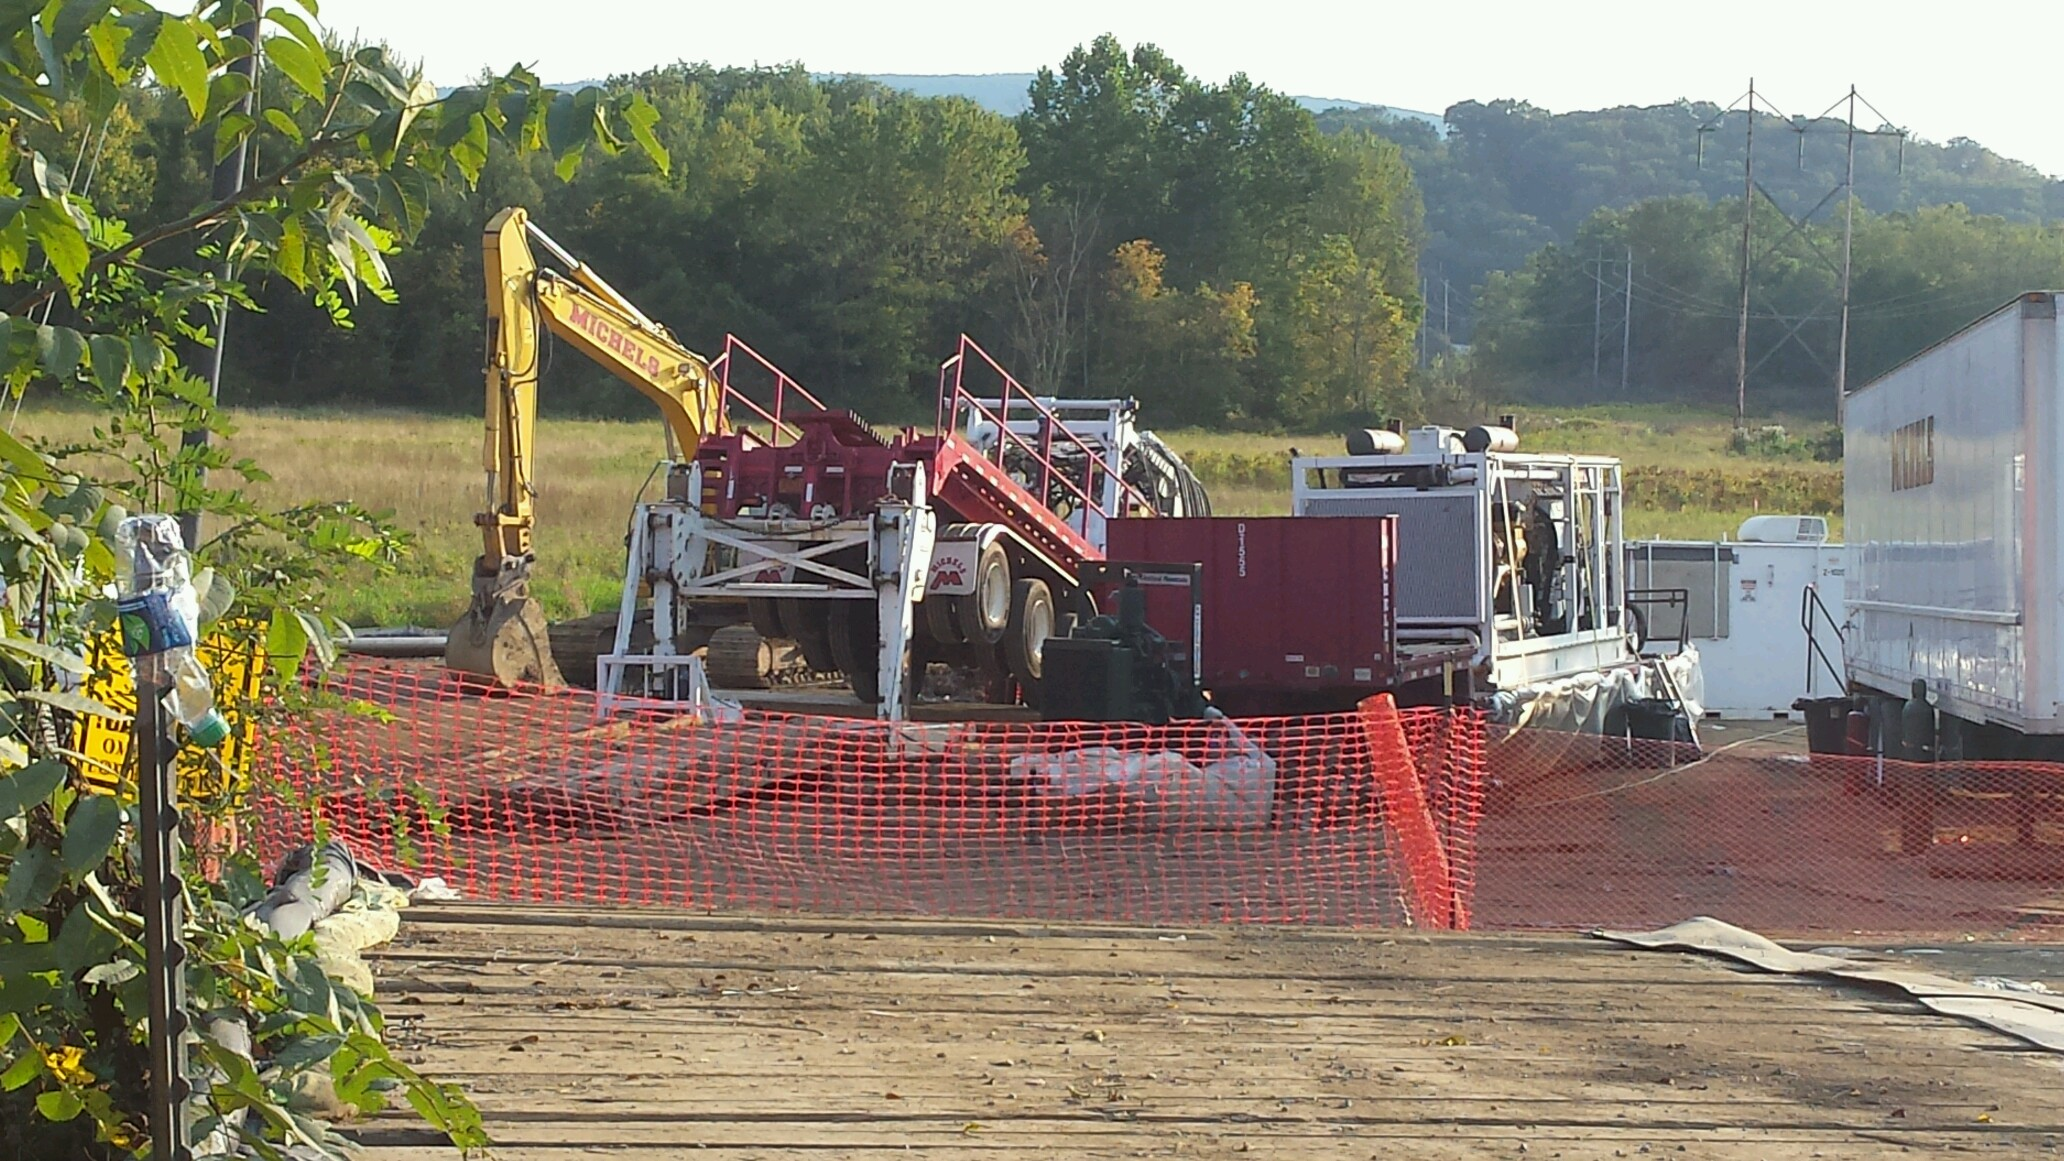 URGENT: Mariner East II Construction Crews Approaching Camp White Pine